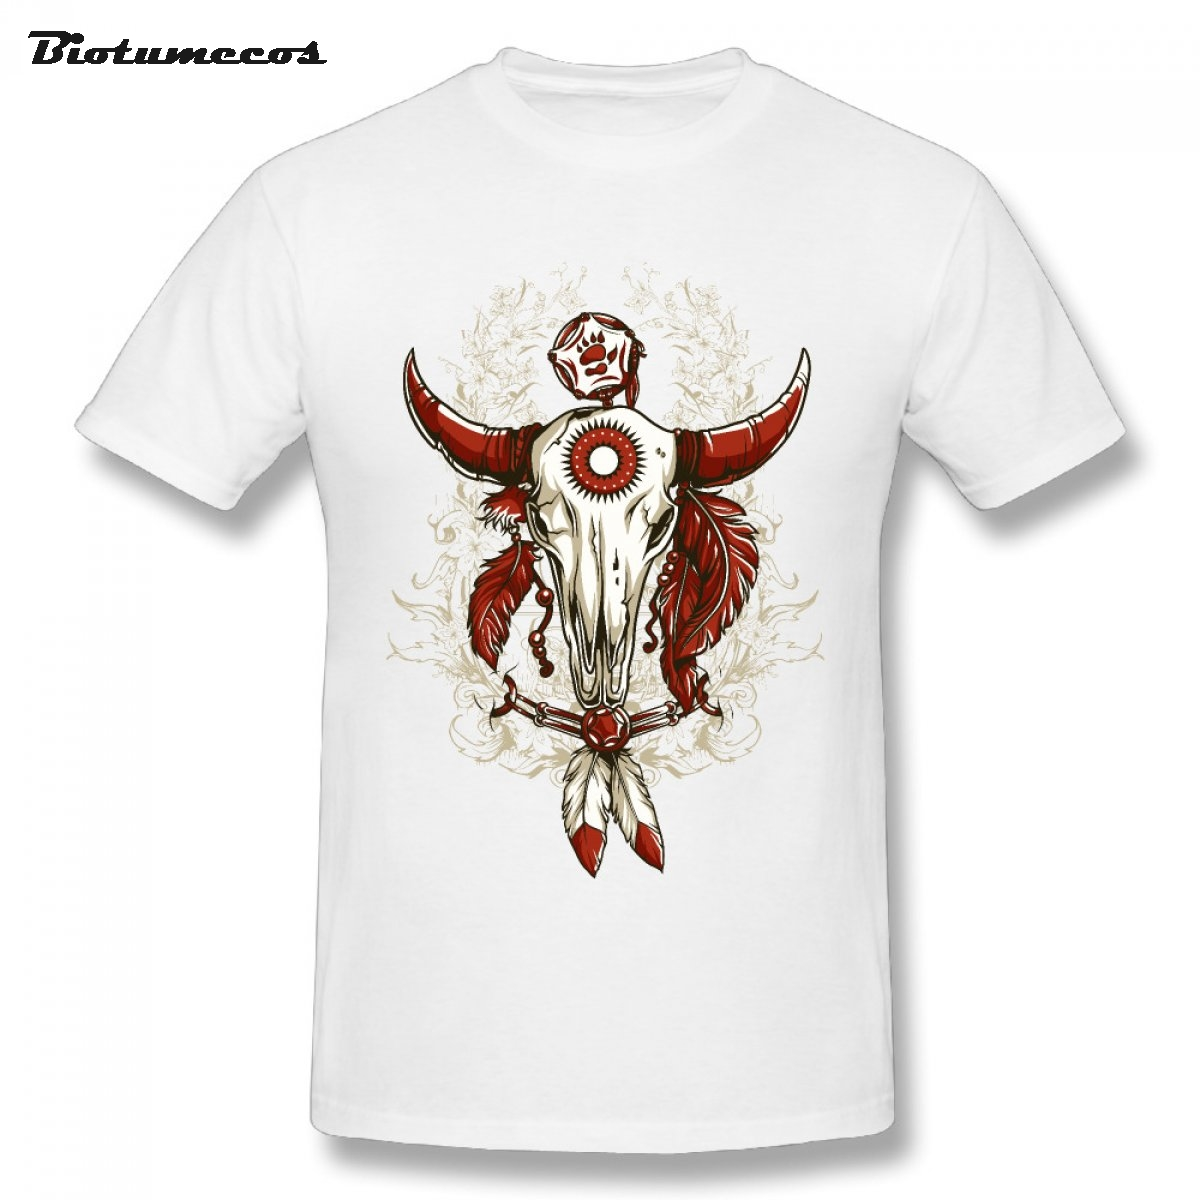 Summer Men T shirt Goat Skull Tied With Shackle Red Horns Printed Short  Sleeve O-neck 100% Cotton Tees Shirt Top Clothing MTK151 7d4b0341a20